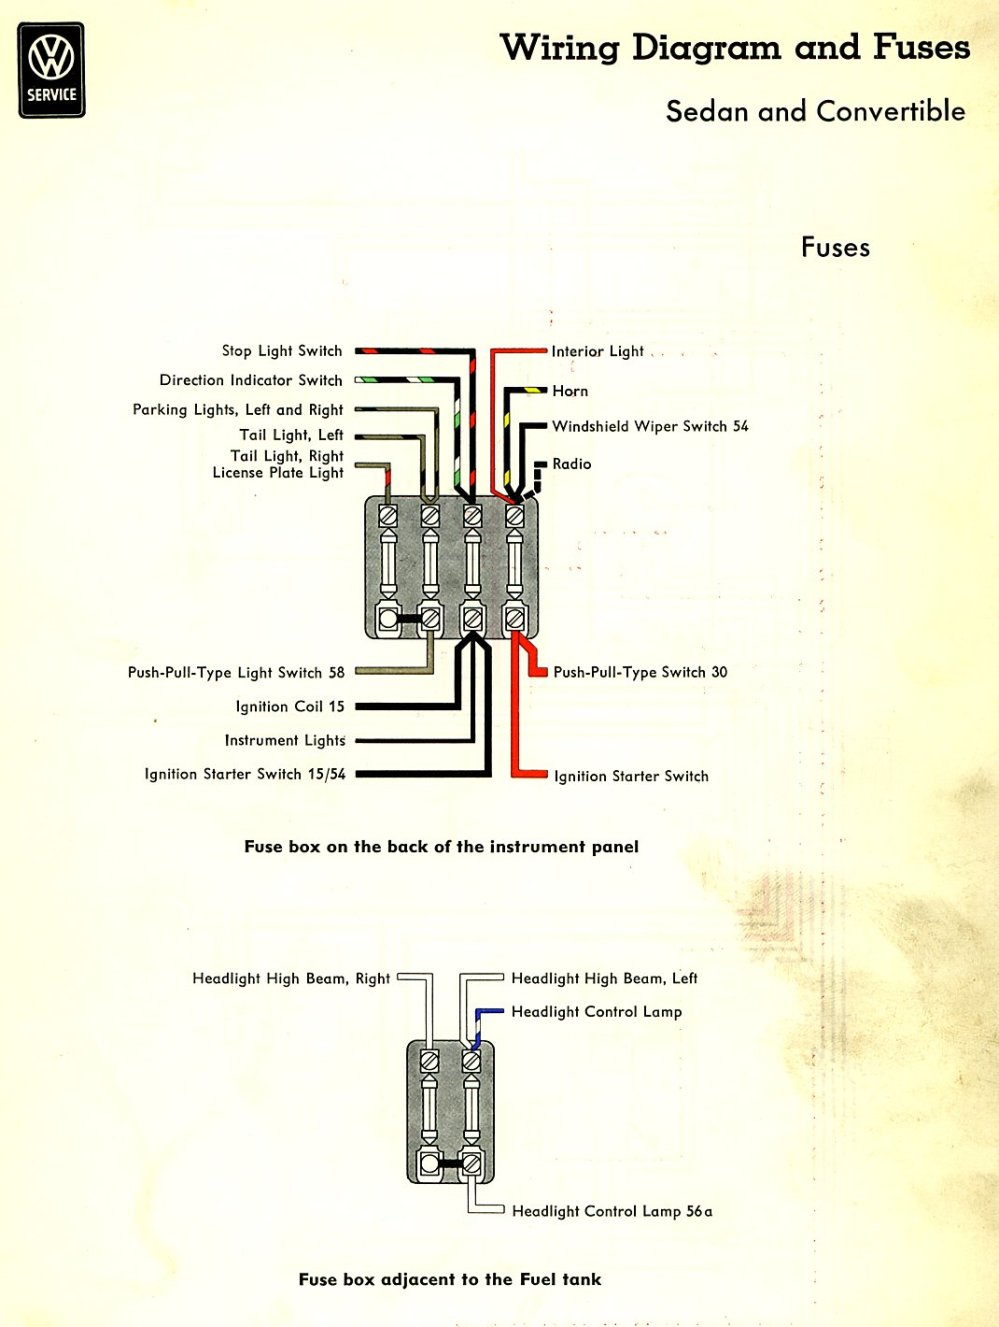 medium resolution of 1961 vw beetle engine wiring diagram wiring diagram technic 1961 vw engine diagram